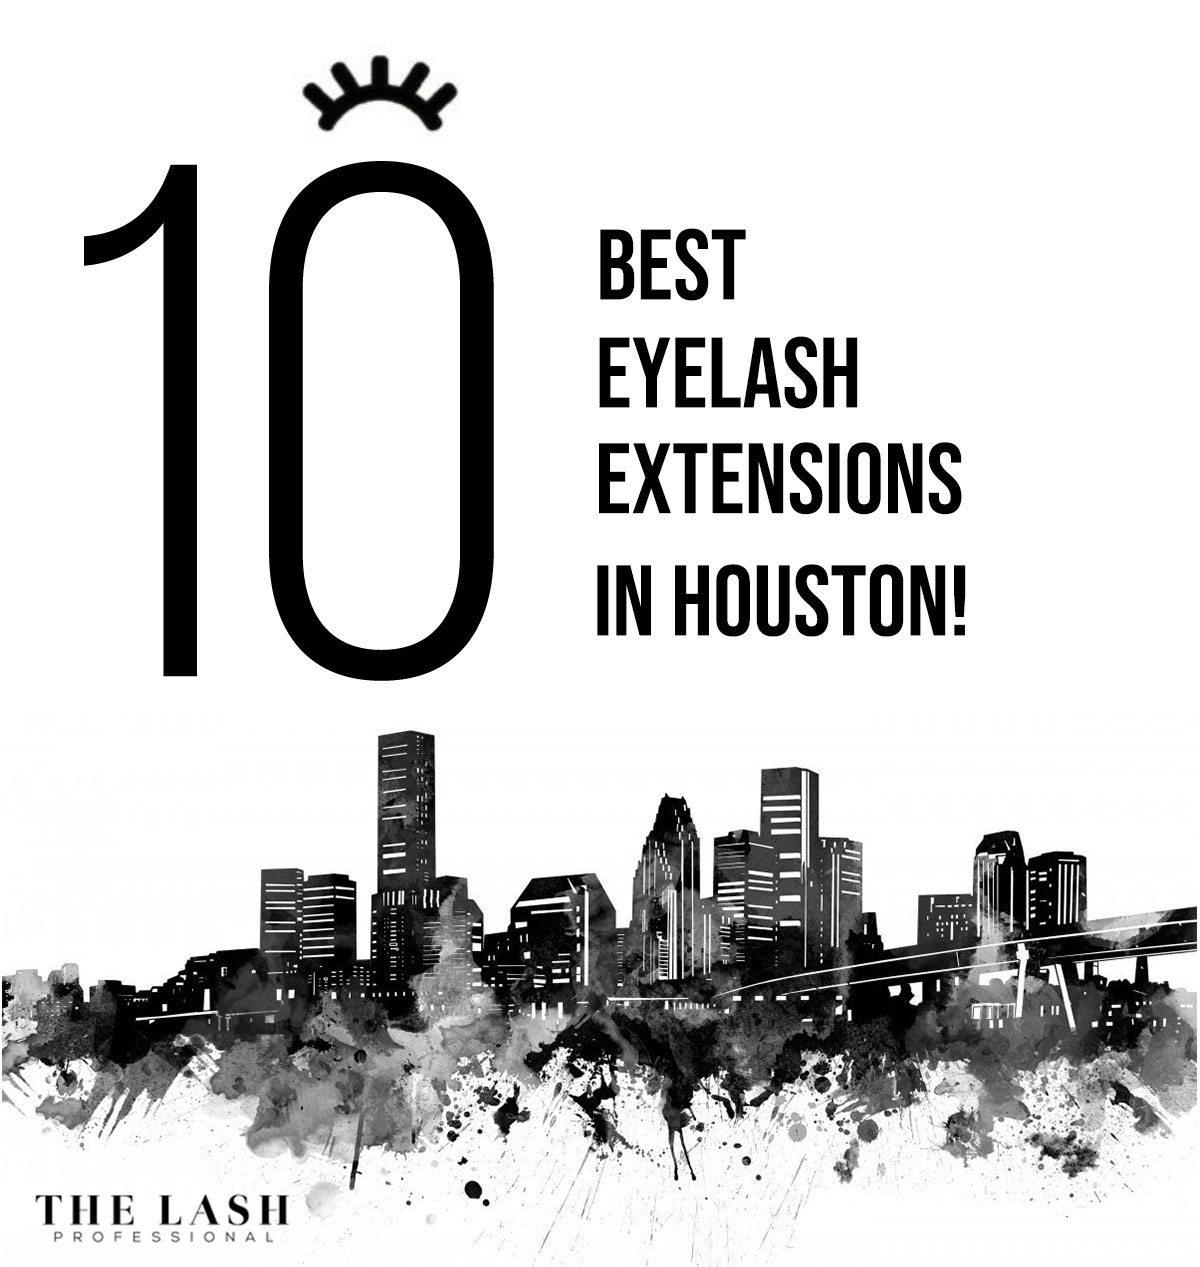 Best Eyelash Extensions in Houston